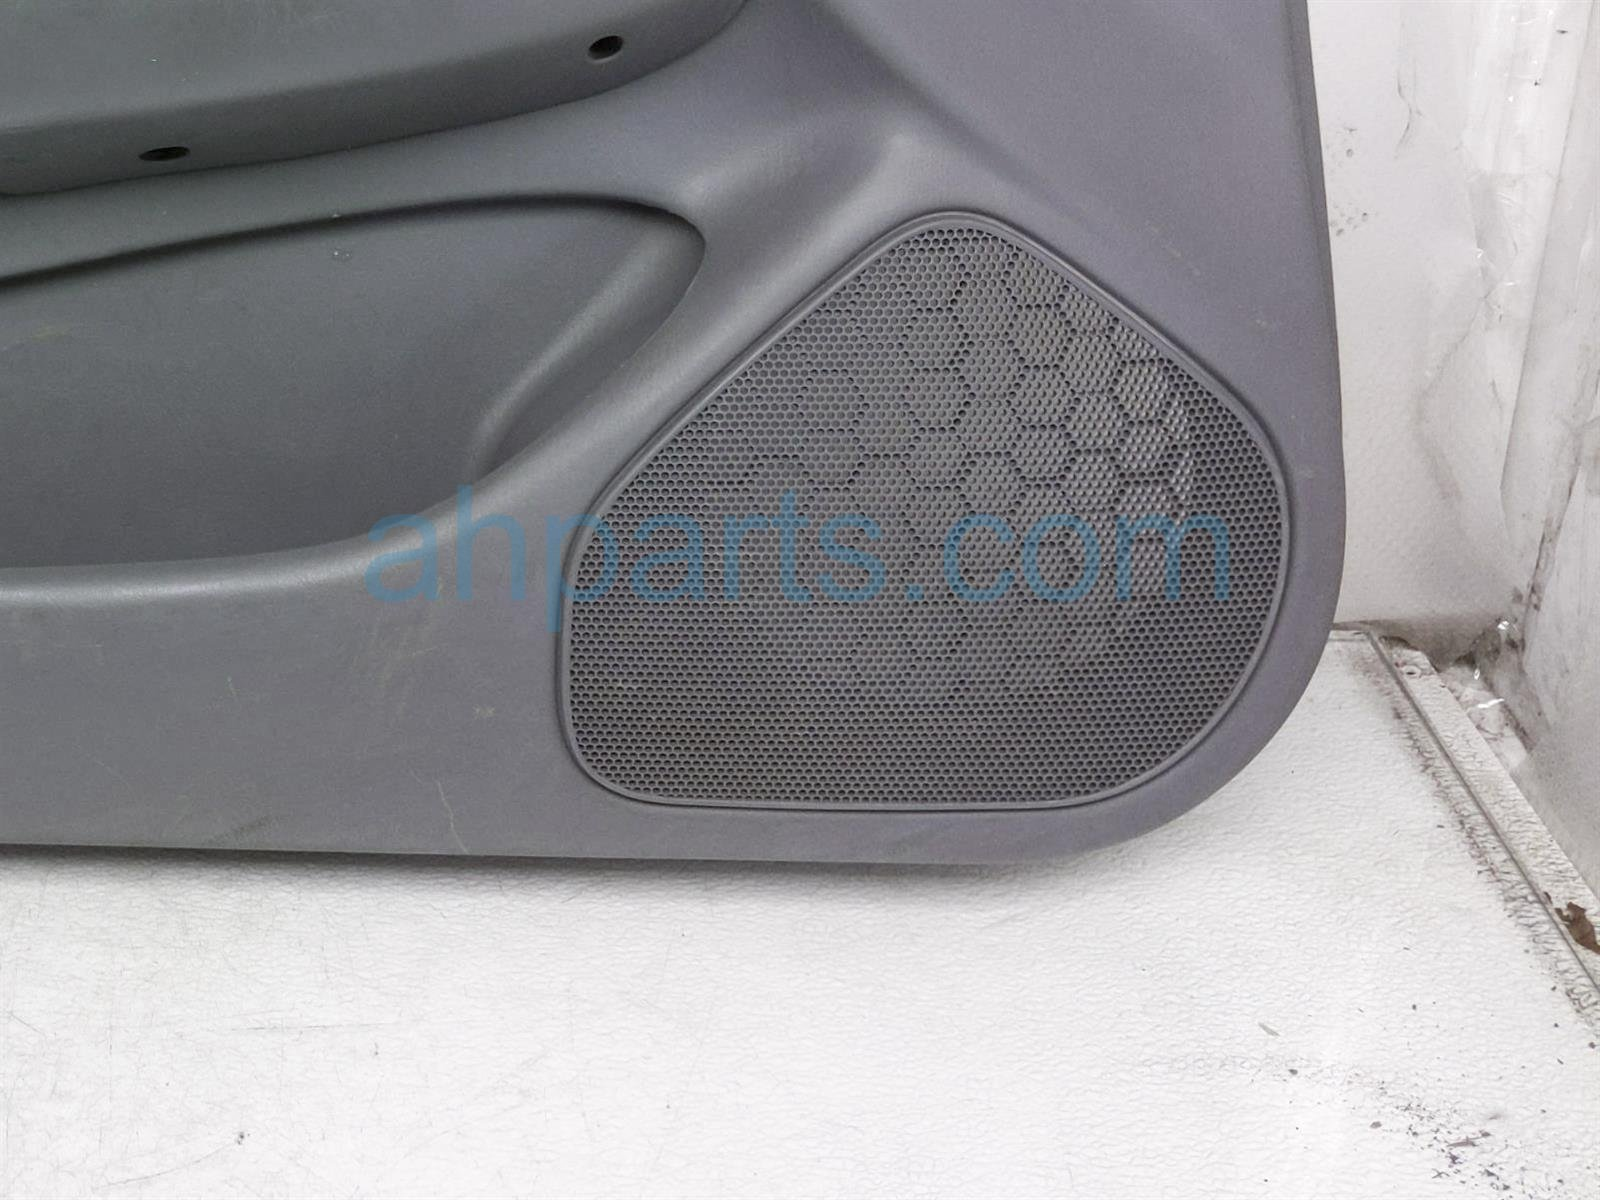 2001 Toyota Camry Trim / Liner Front Driver Interior Door Panel   Grey*** 67620 AA340 Replacement